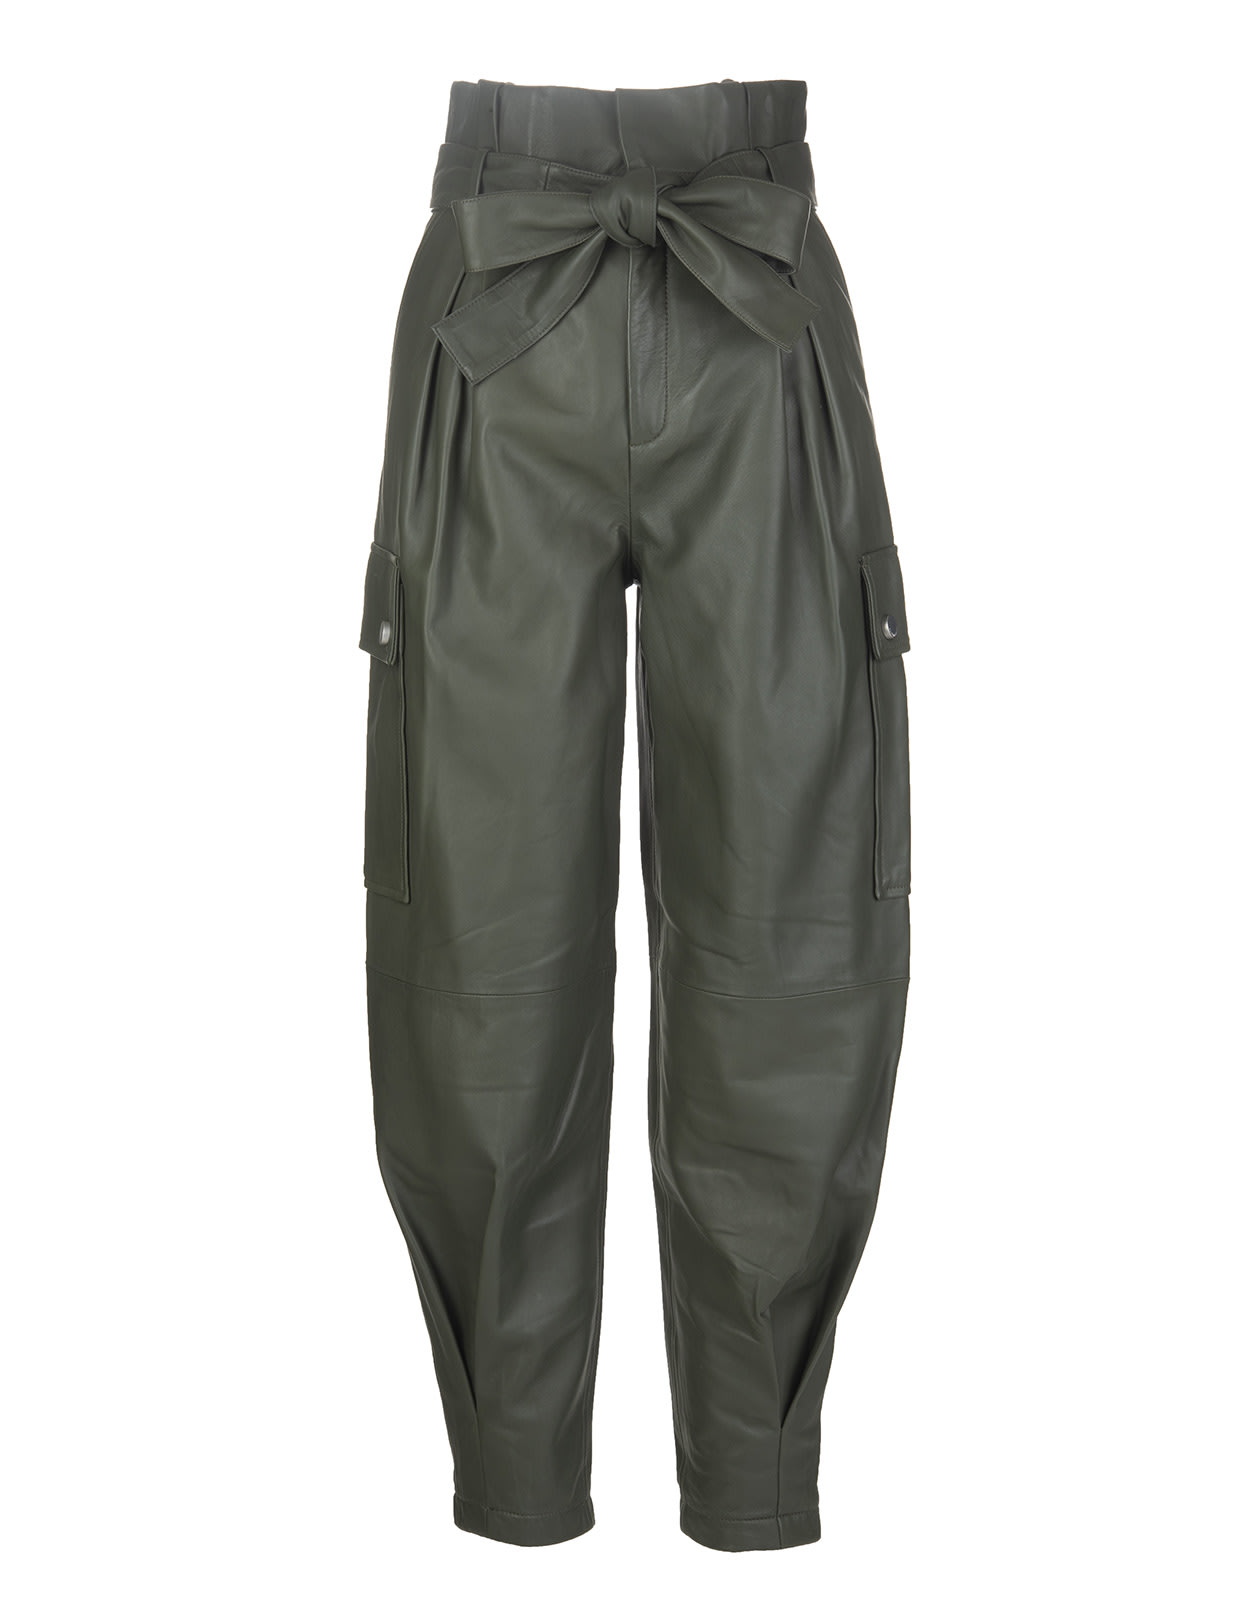 RED Valentino Military Green Leather Trousers With Belt